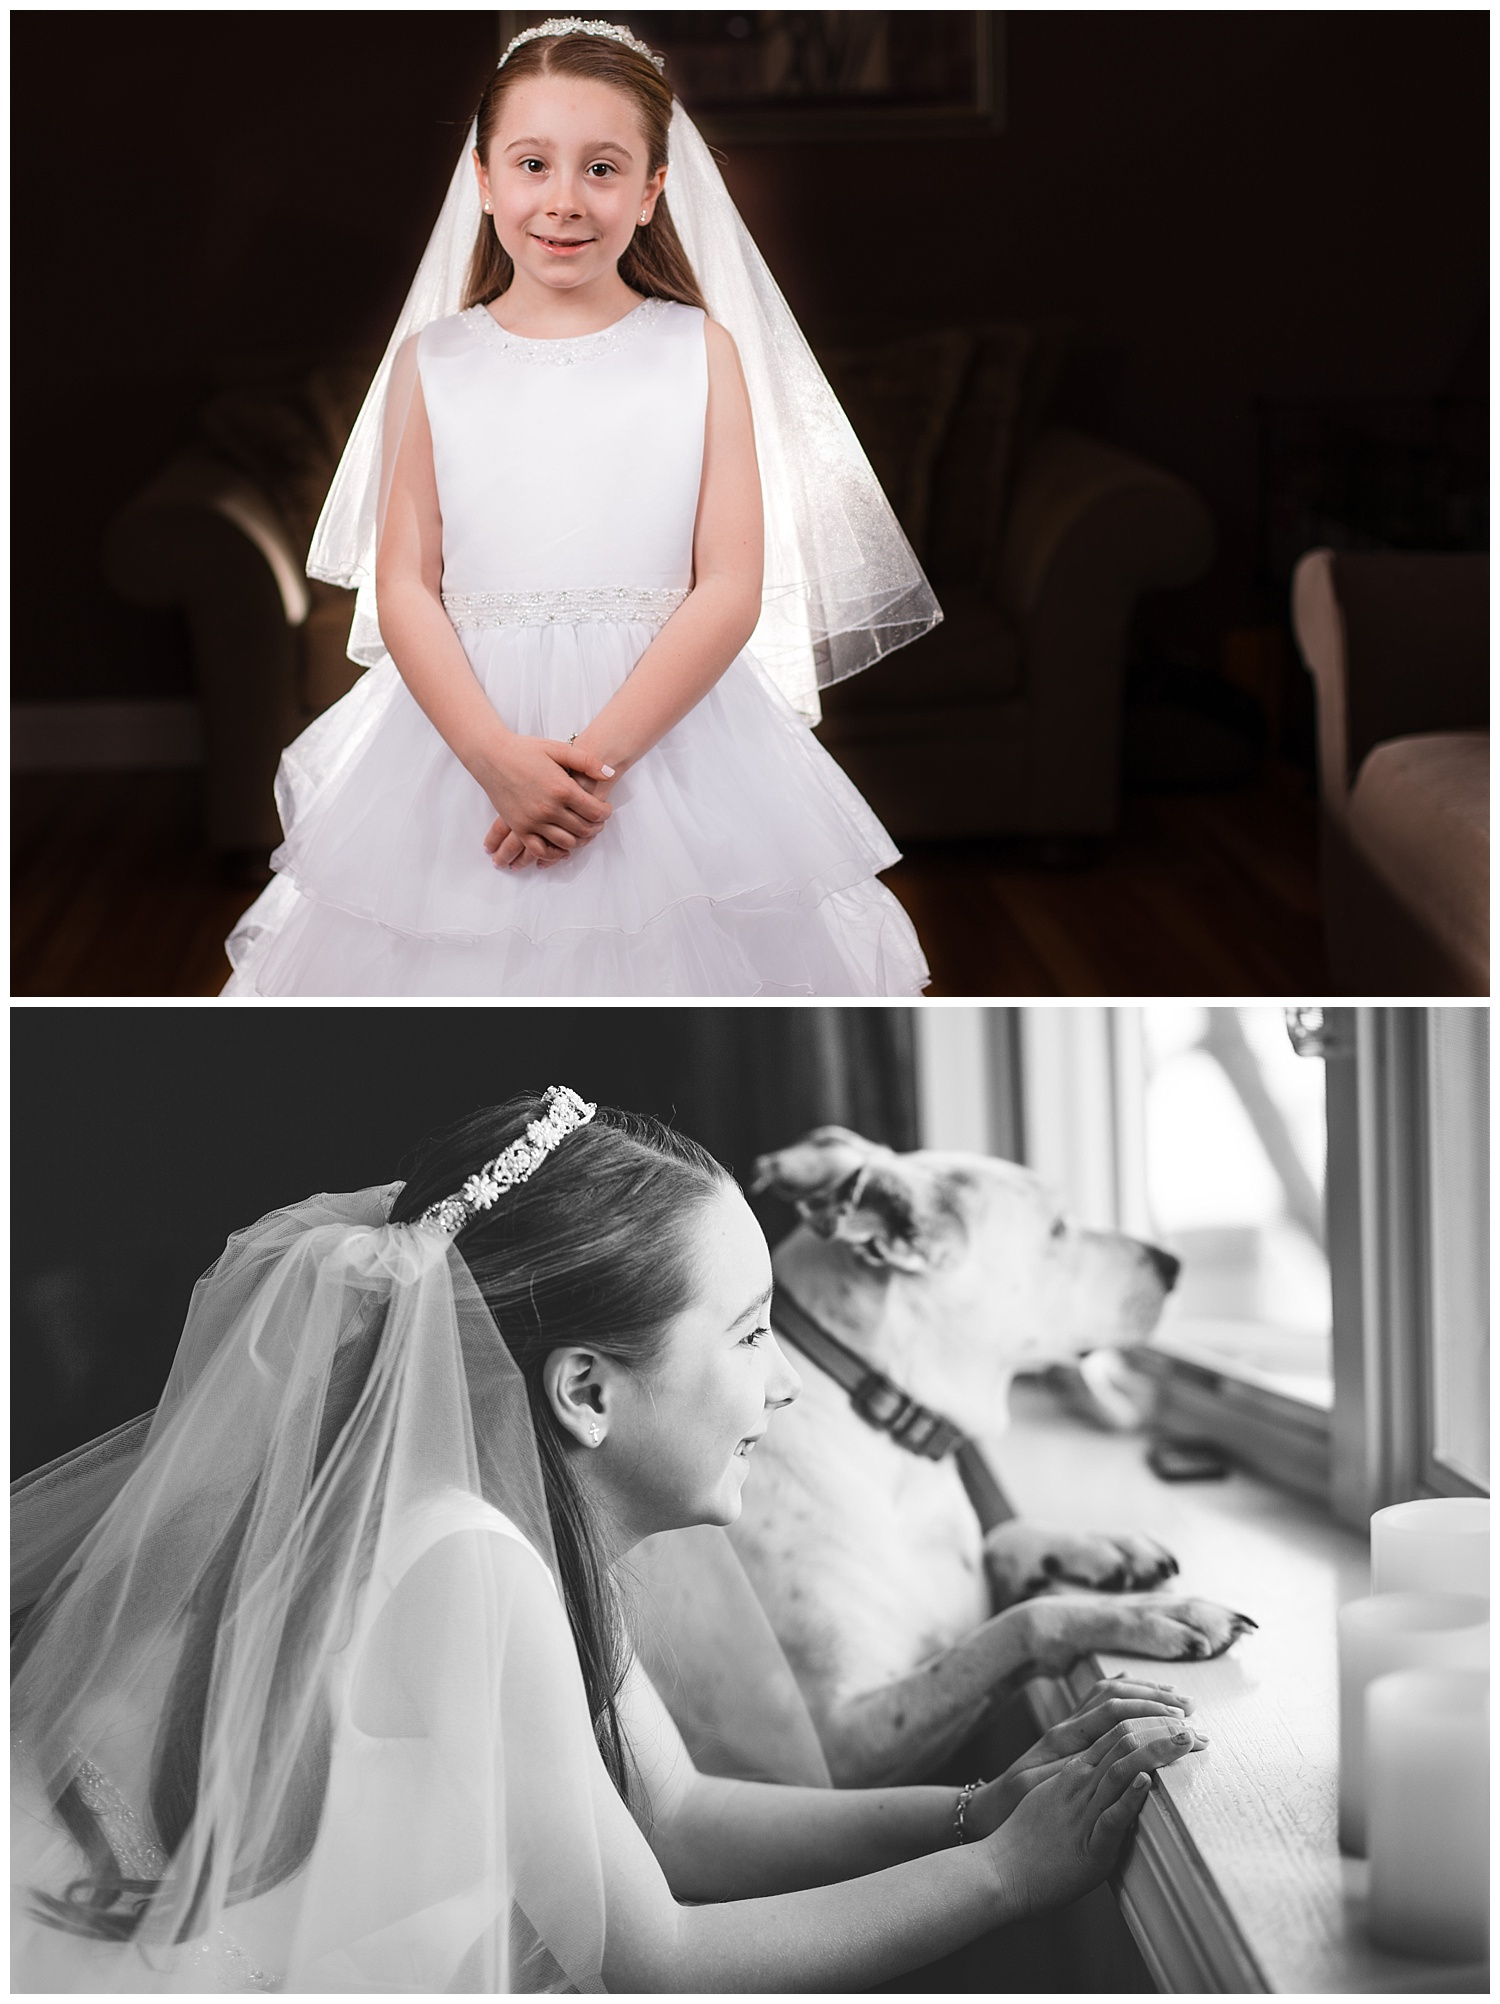 daniel_nydick_nj_wedding-family-lifestyle-photographer